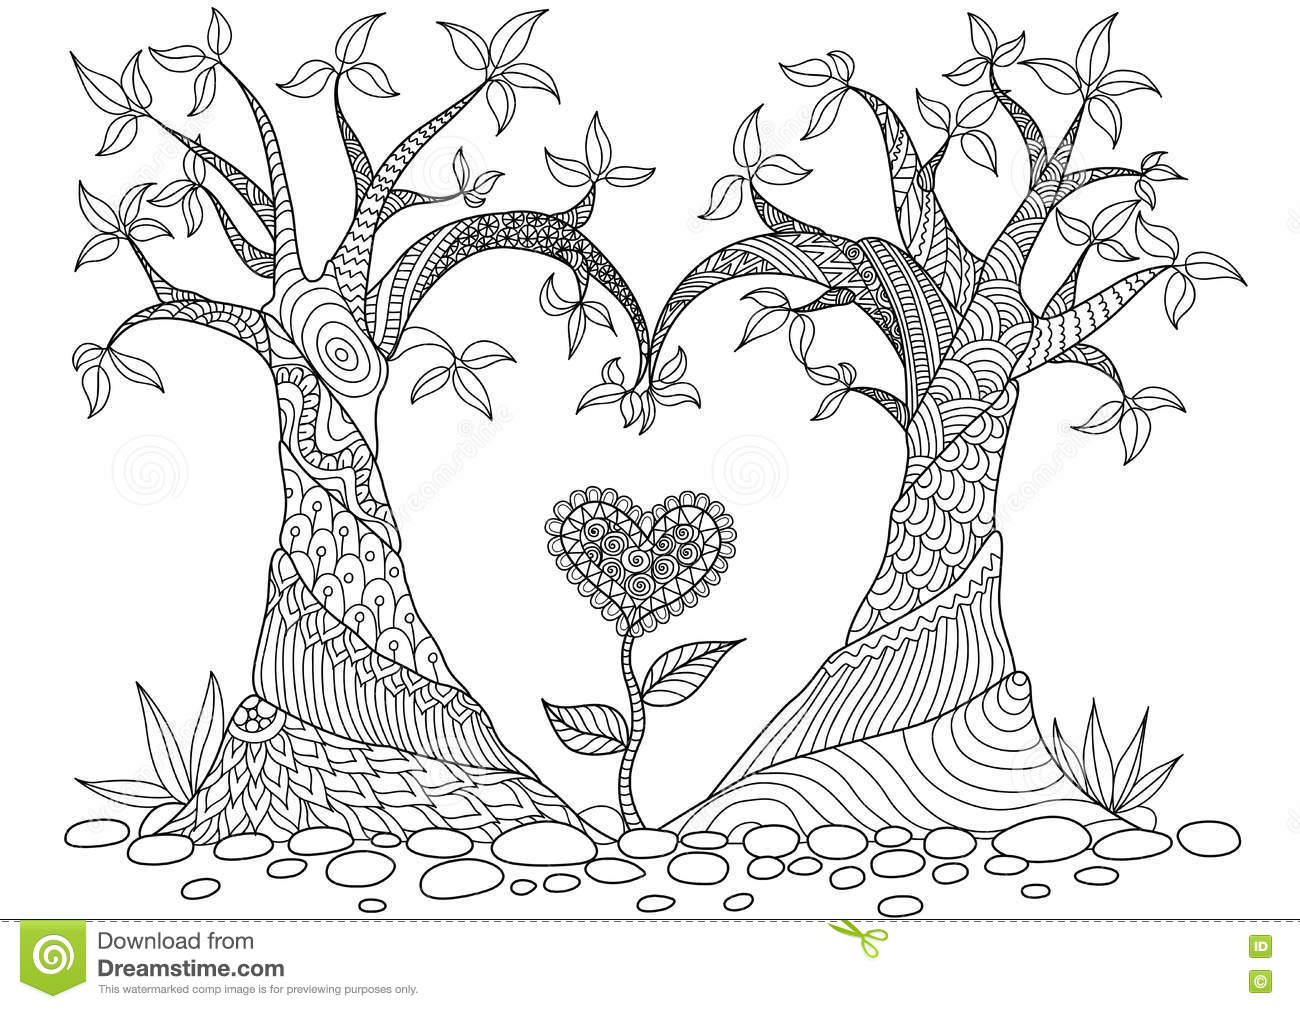 Abstract Tree Coloring Pages : Abstract shape mandala royalty free stock photography